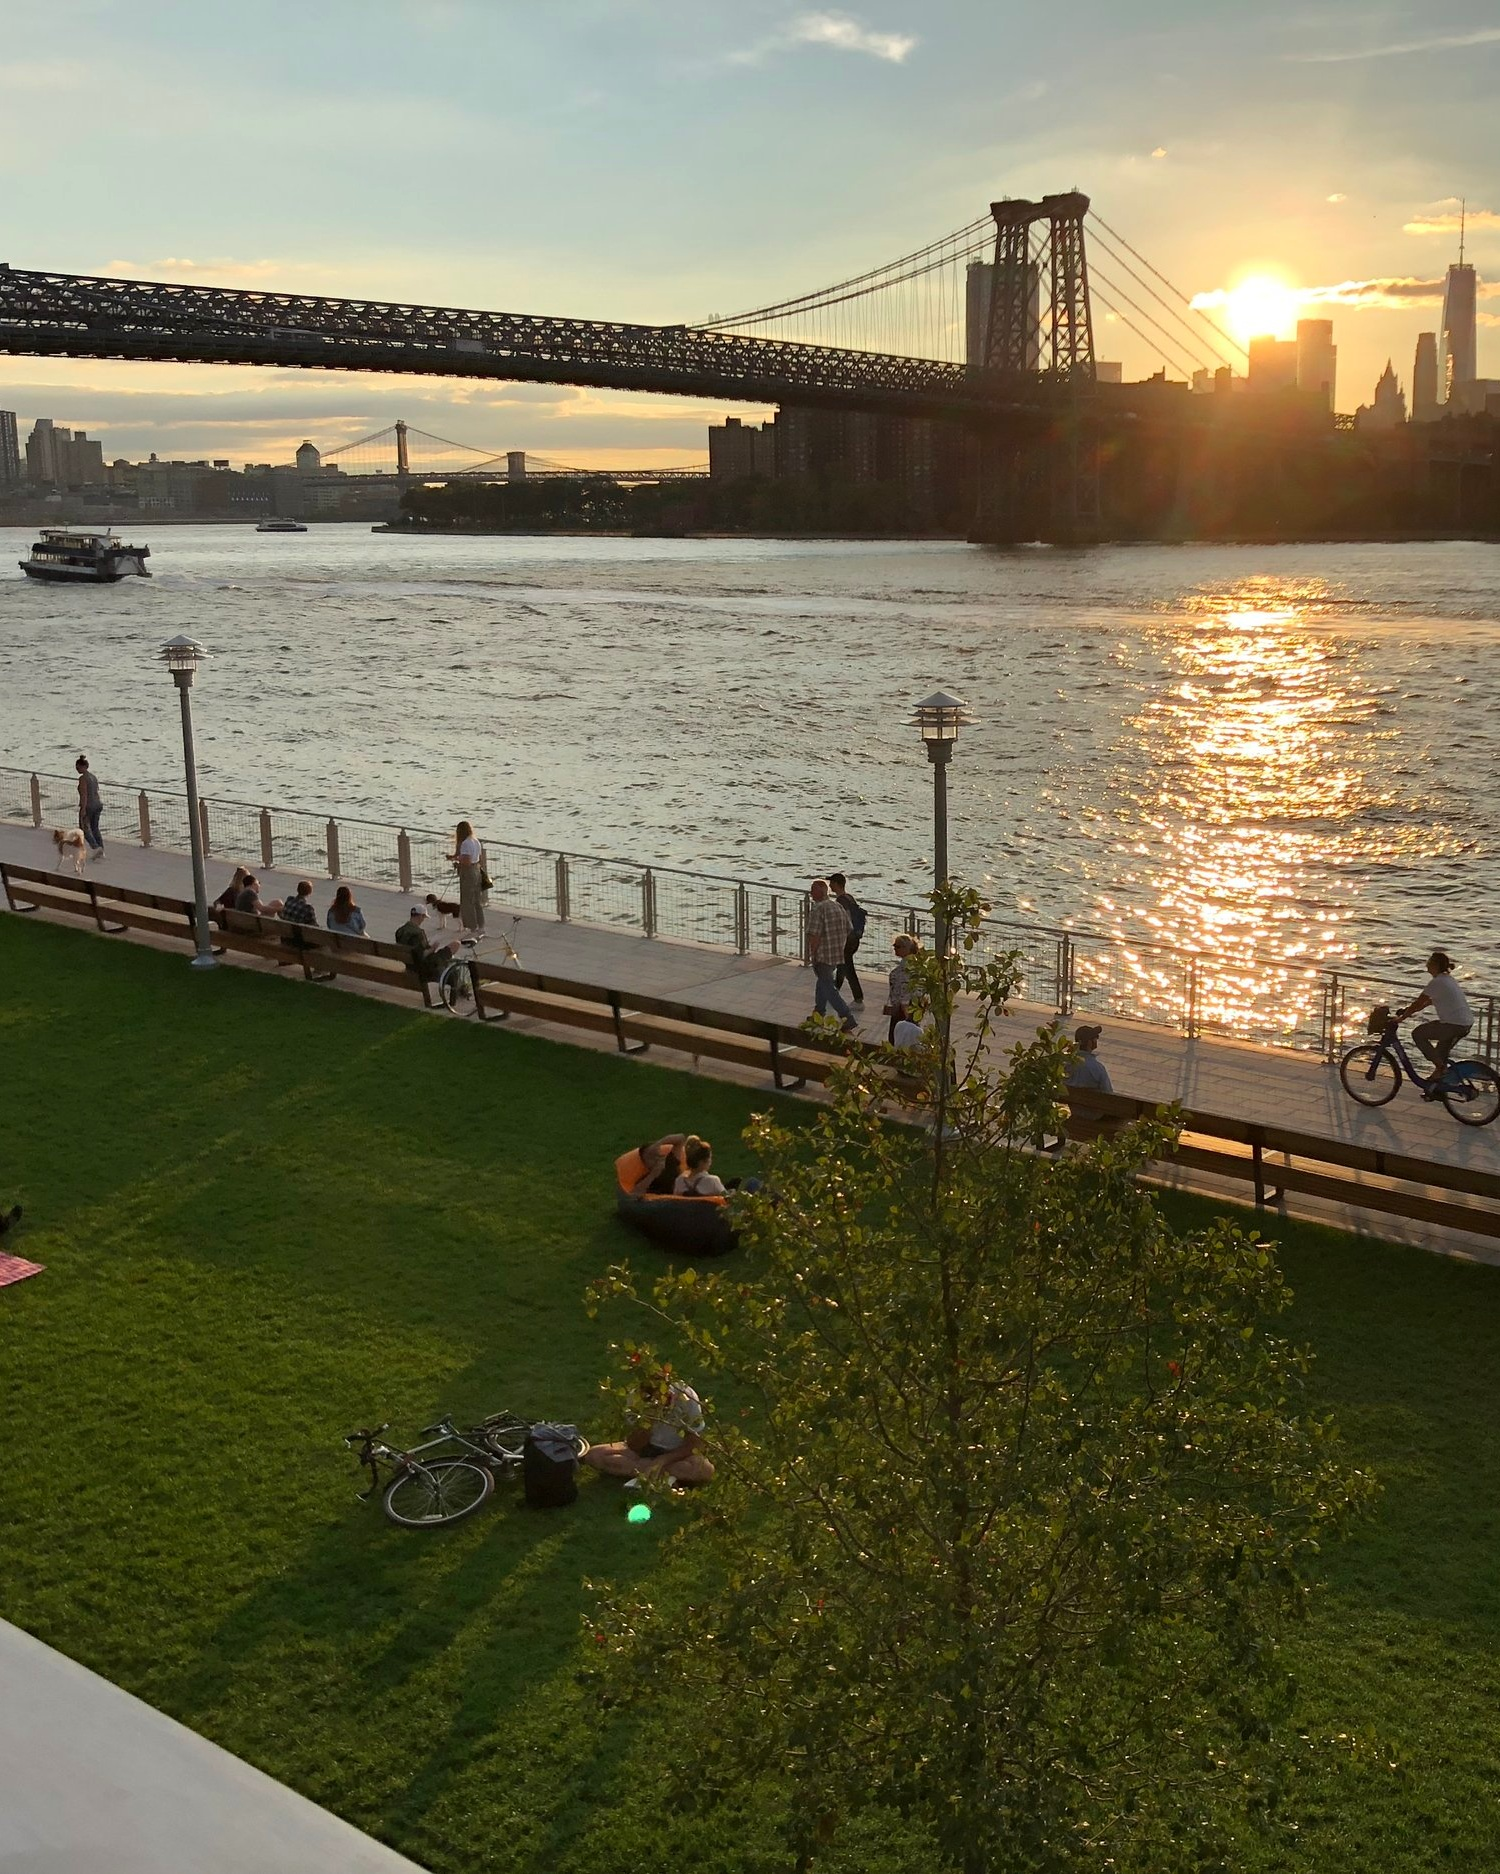 """""""Personally, I think the best time to go is in the evening."""" - """"The Park is beautifully lit and the reflection of the lights from the Artifact Walk, as well as the Williamsburg Bridge, onto the water is seemingly breathtaking."""" -Basmajian"""